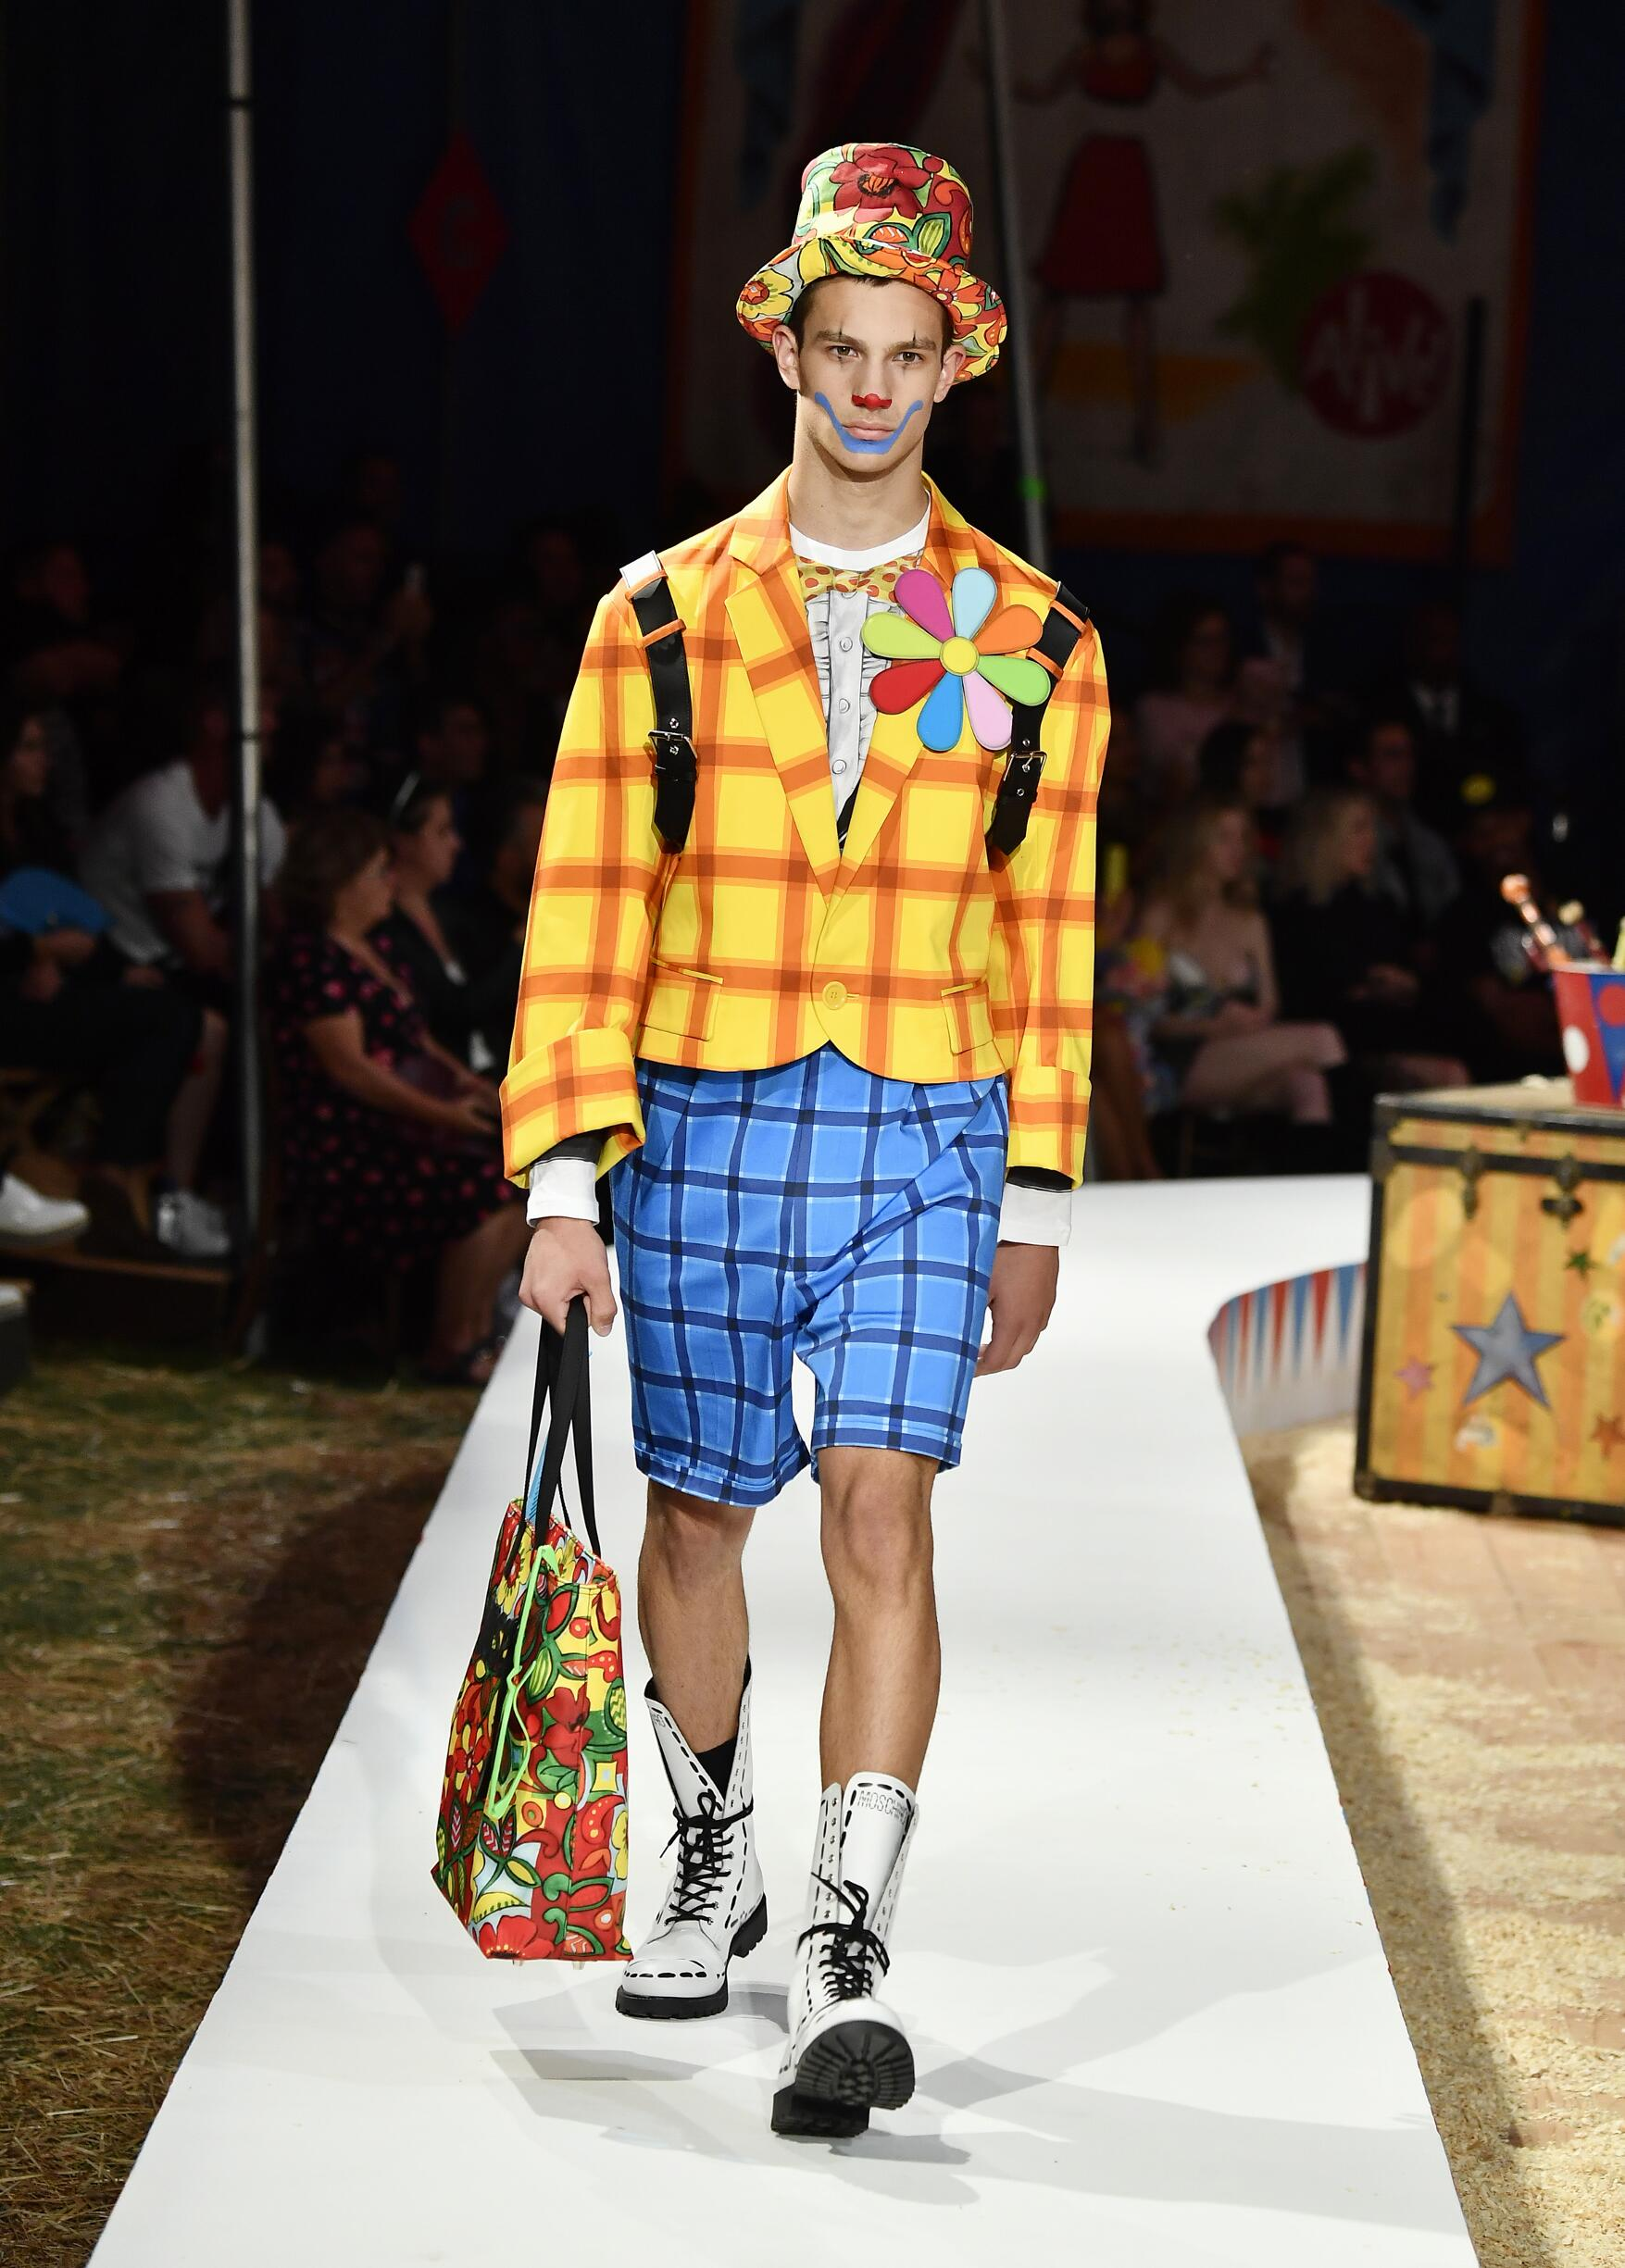 Moschino Spring Summer 2019 Menswear and Women's Resort Collection Look 28 Los Angeles